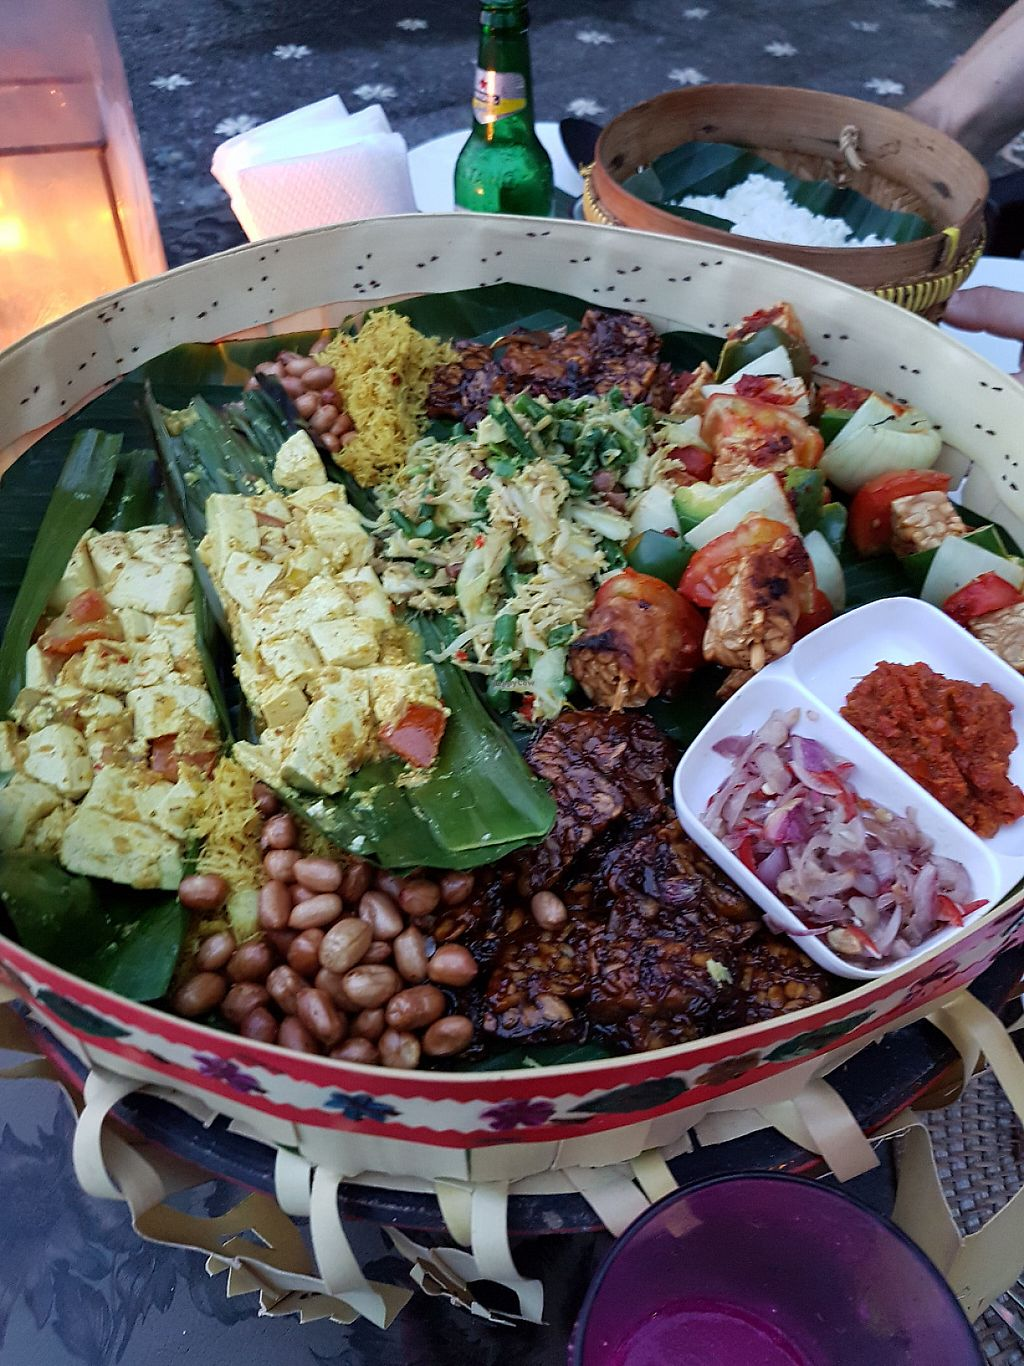 """Photo of Amarta Beach Cottage  by <a href=""""/members/profile/Raw%20Morka"""">Raw Morka</a> <br/>Traditional Balinese vegan fest for 2 people.  <br/> May 5, 2017  - <a href='/contact/abuse/image/91693/255982'>Report</a>"""